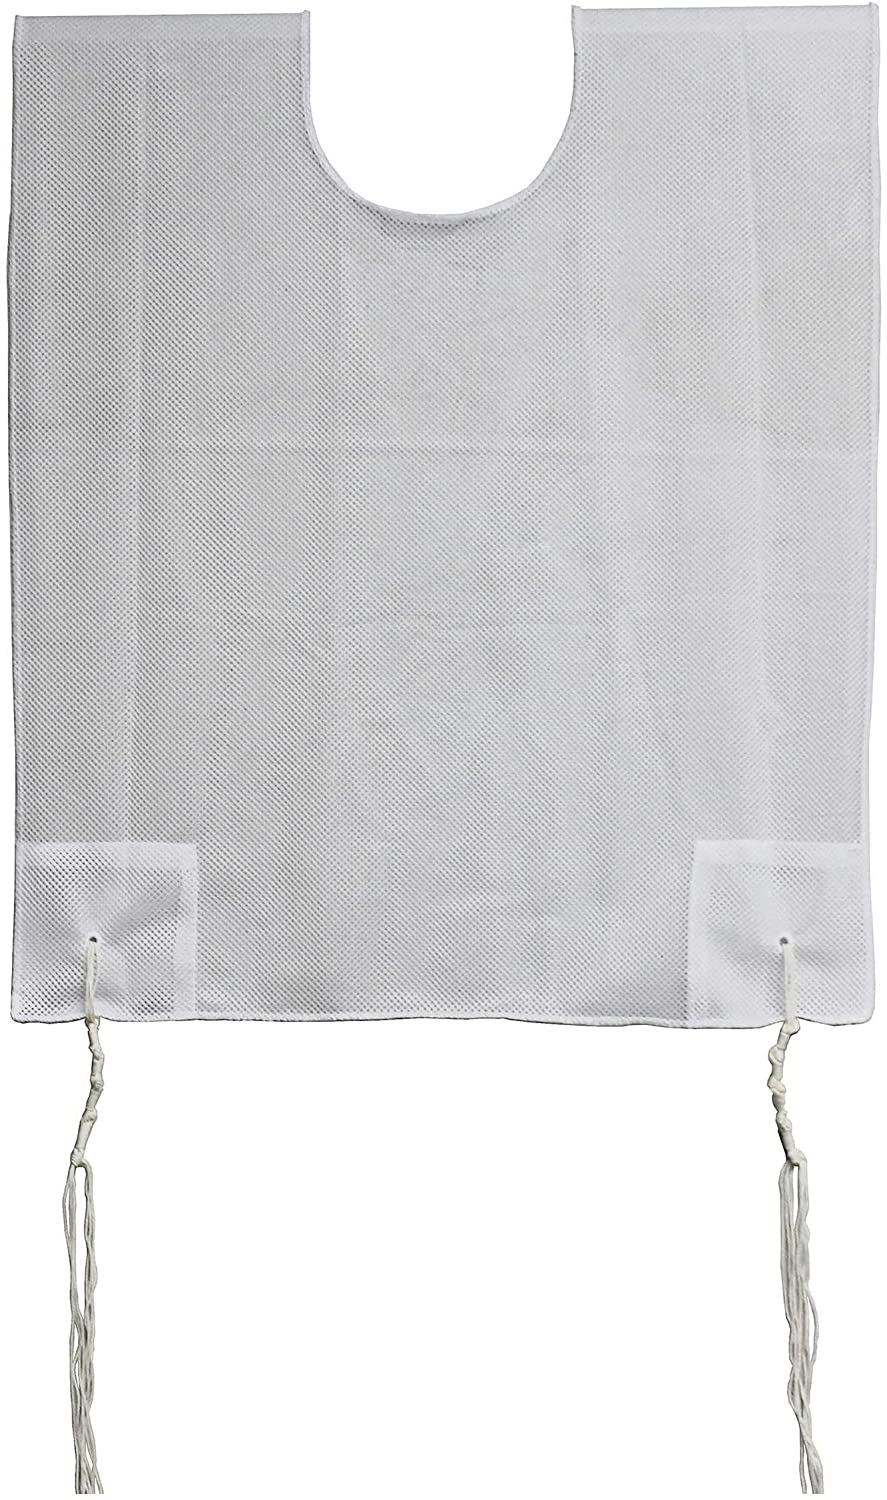 Zion Judaica 100/% Polyester Quality Mesh Tzitzit Garment Certified Kosher Imported from Israel